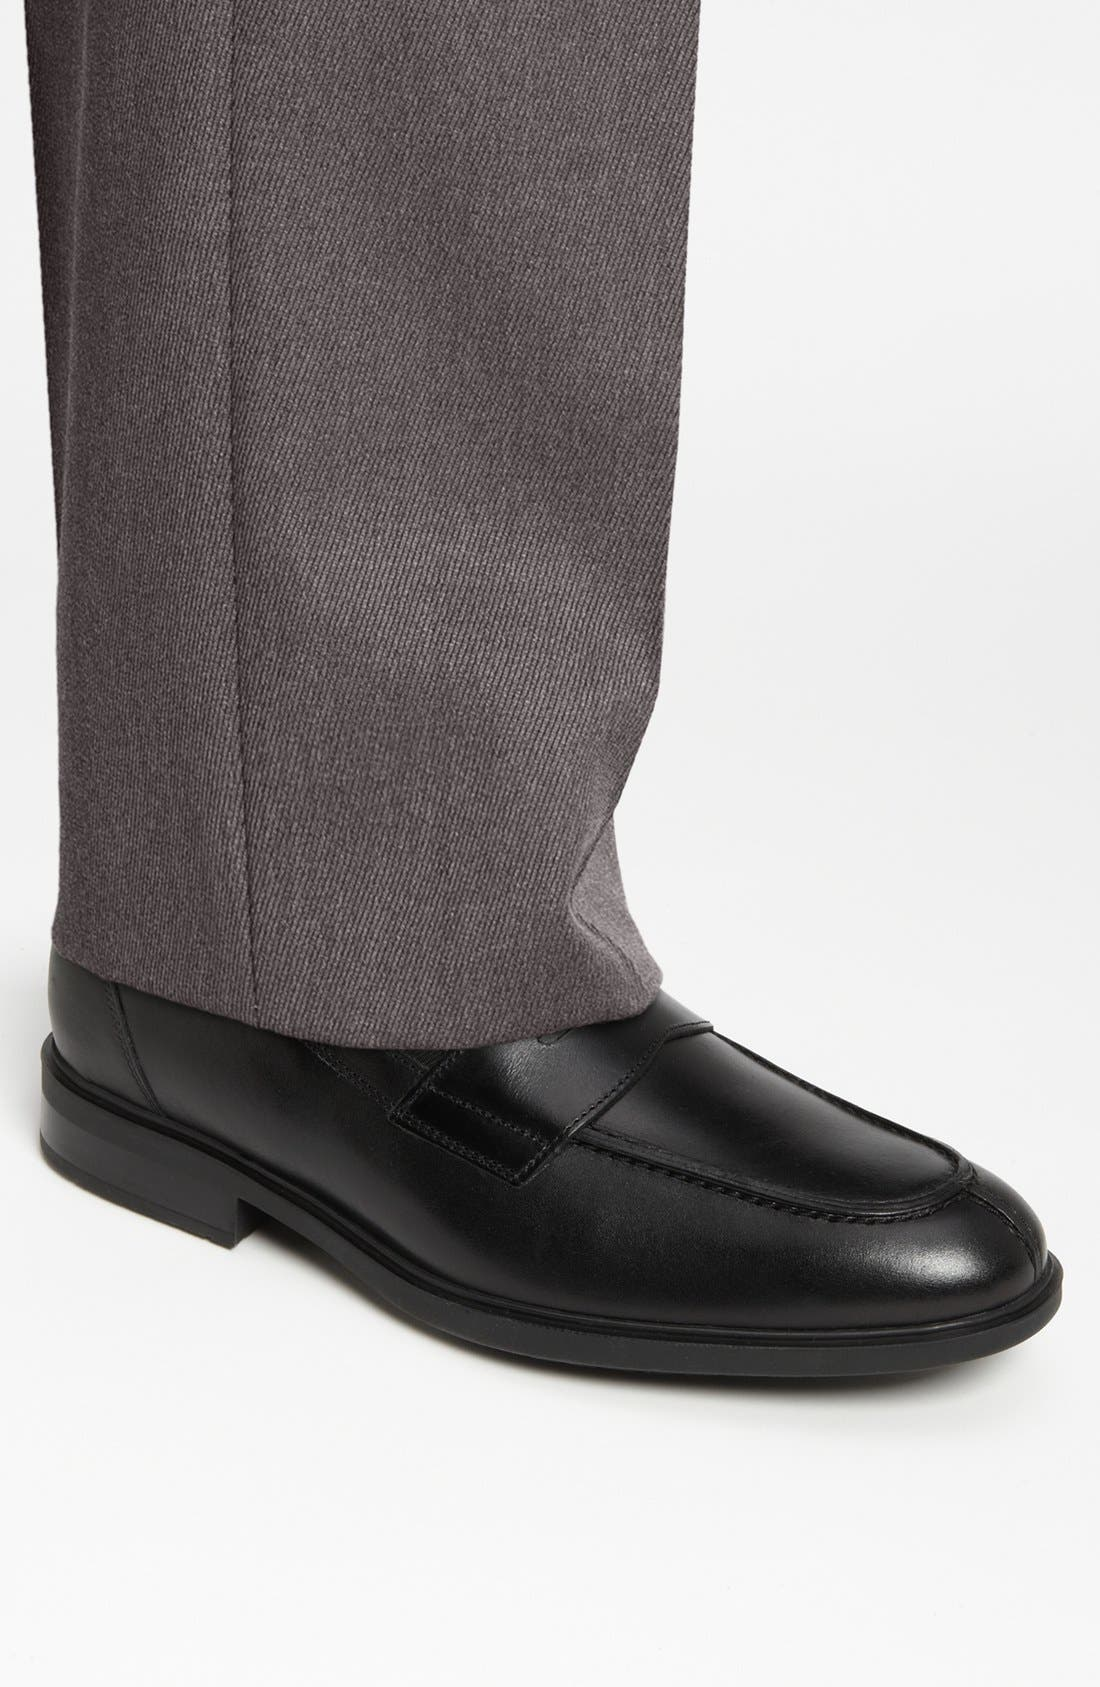 Fortino Loafer,                             Alternate thumbnail 11, color,                             001